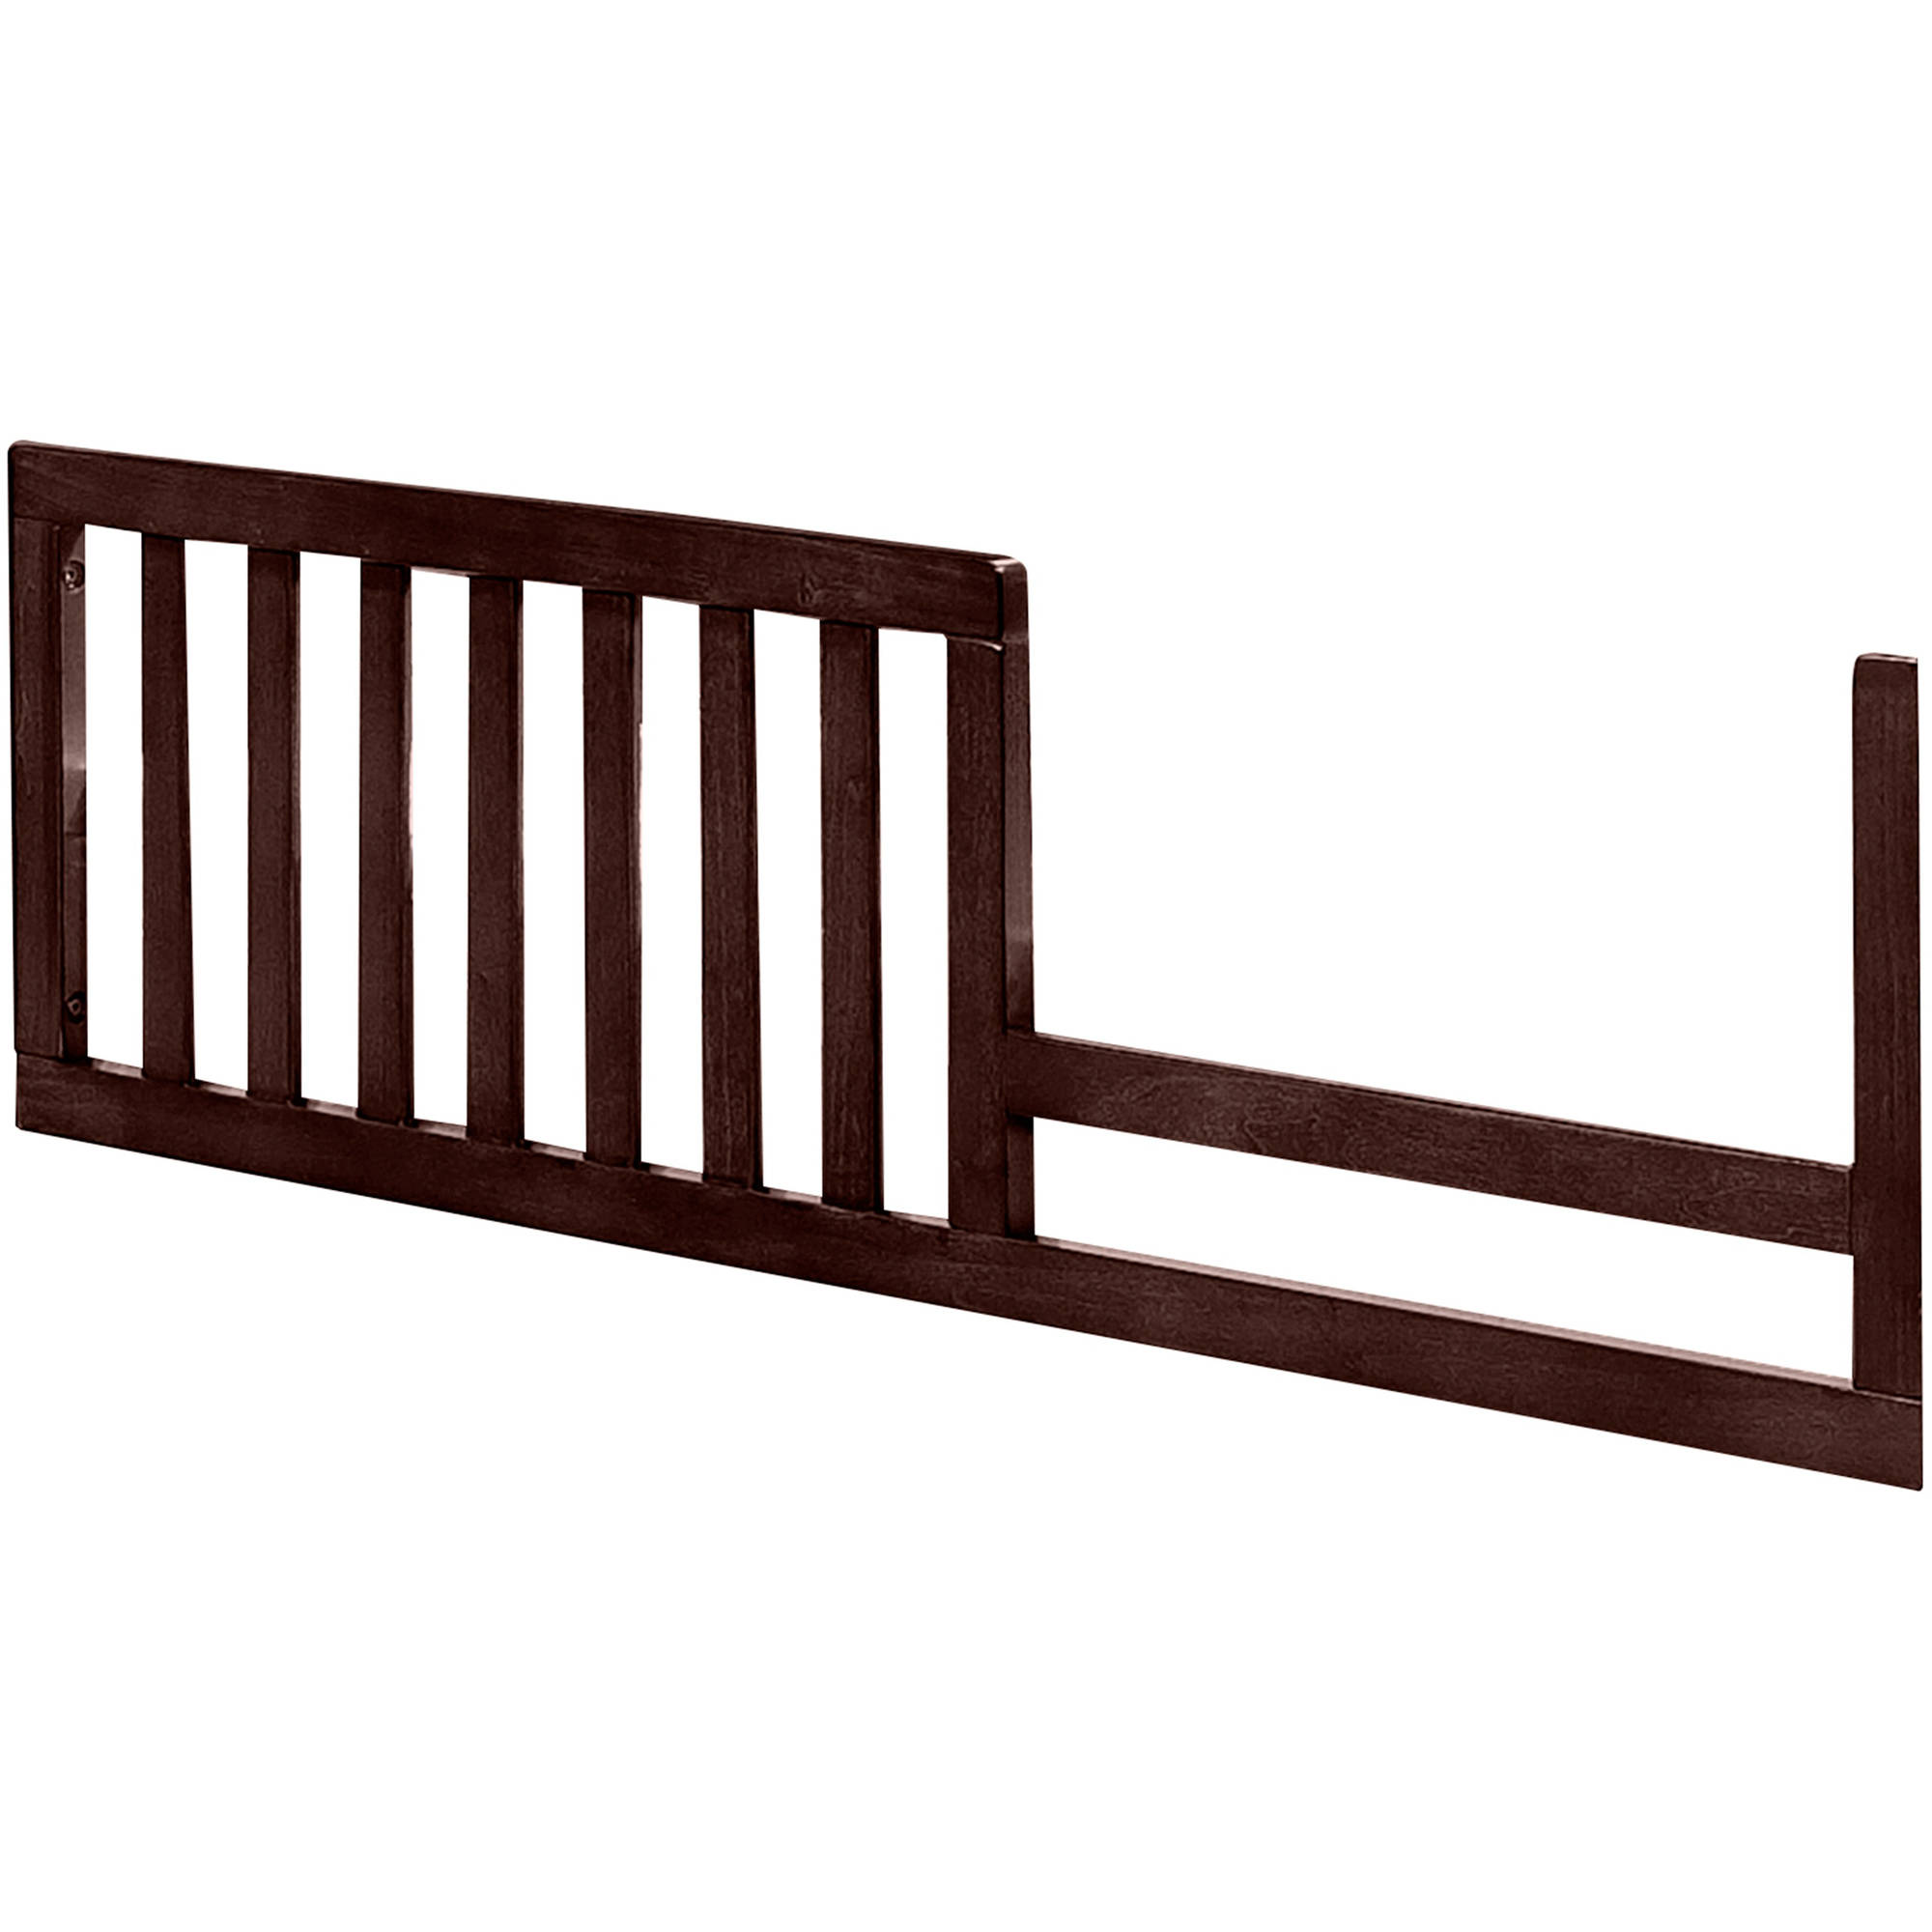 Imagio Baby Midtown Island Toddler Guardrail, Chocolate Mist